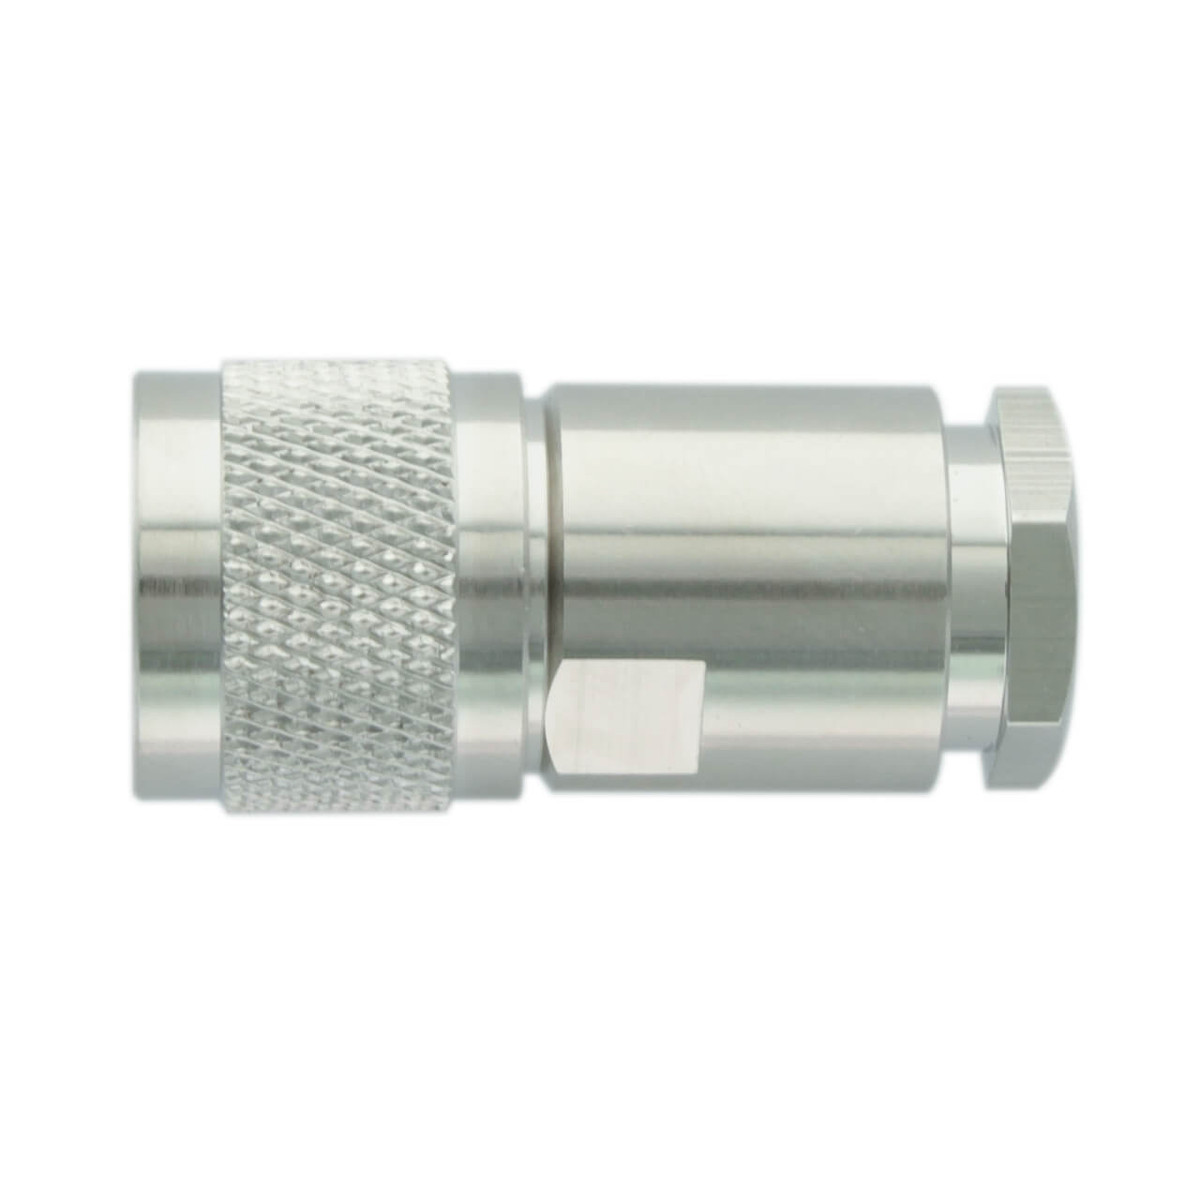 Bolton Technical N-Male LMR400 Solderless Connector